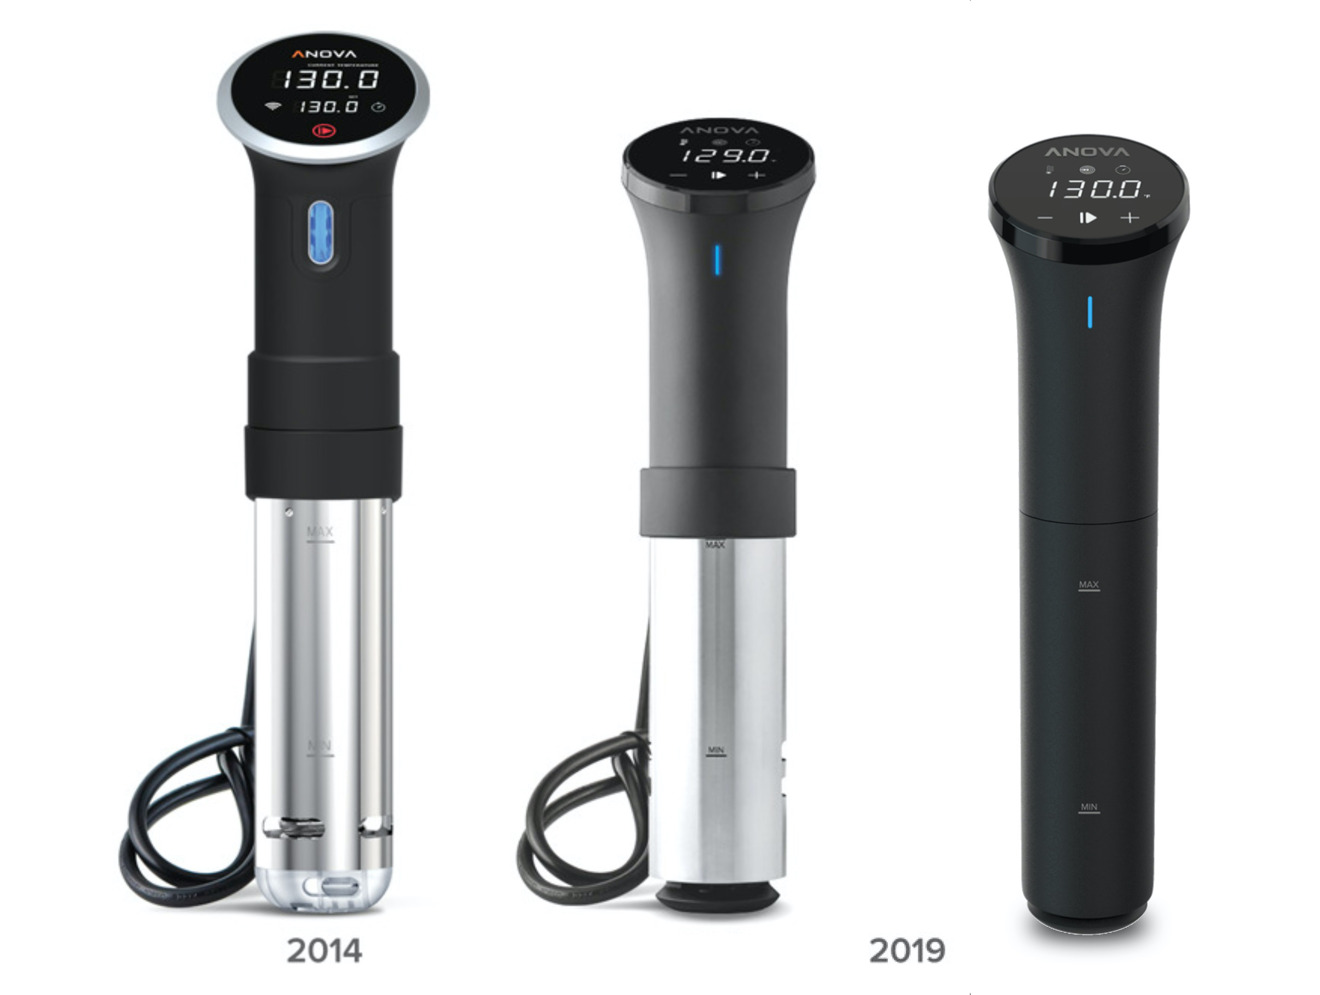 The original Anova Precision Cooker versus the new Precision Cooker and Precision Cooker Nano